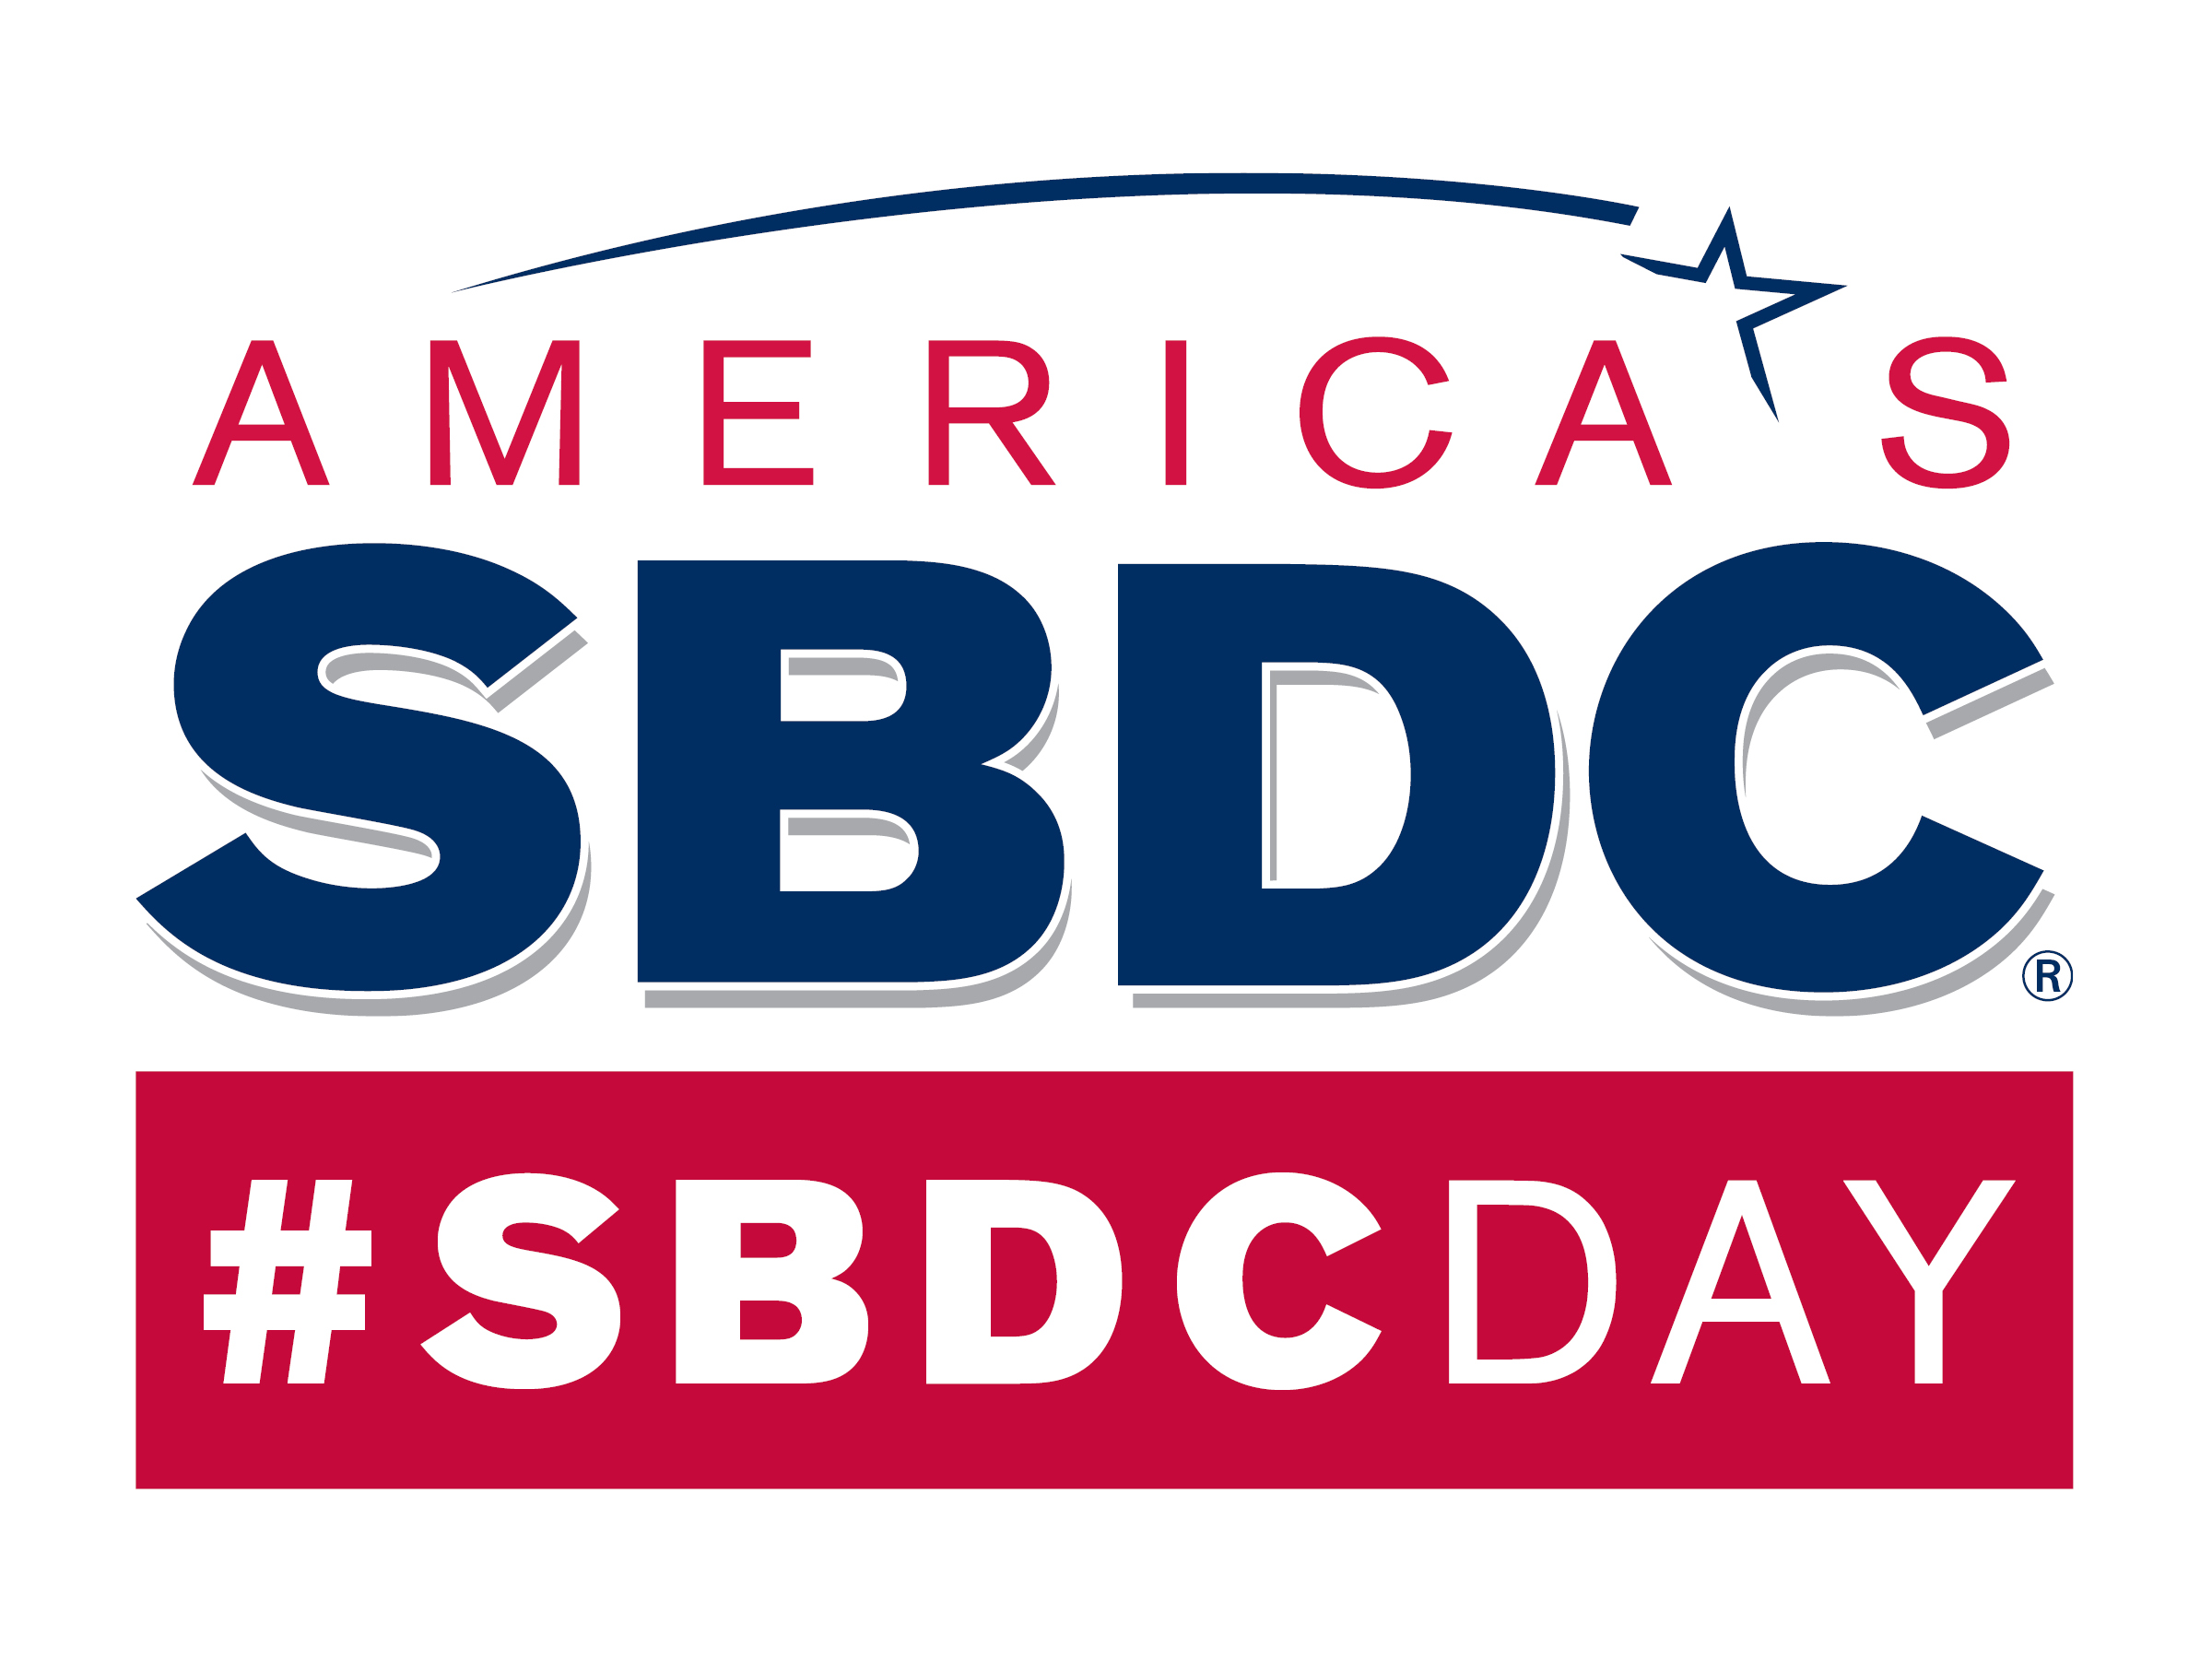 Celebrating 40 Years! America's SBDC Day on March 18